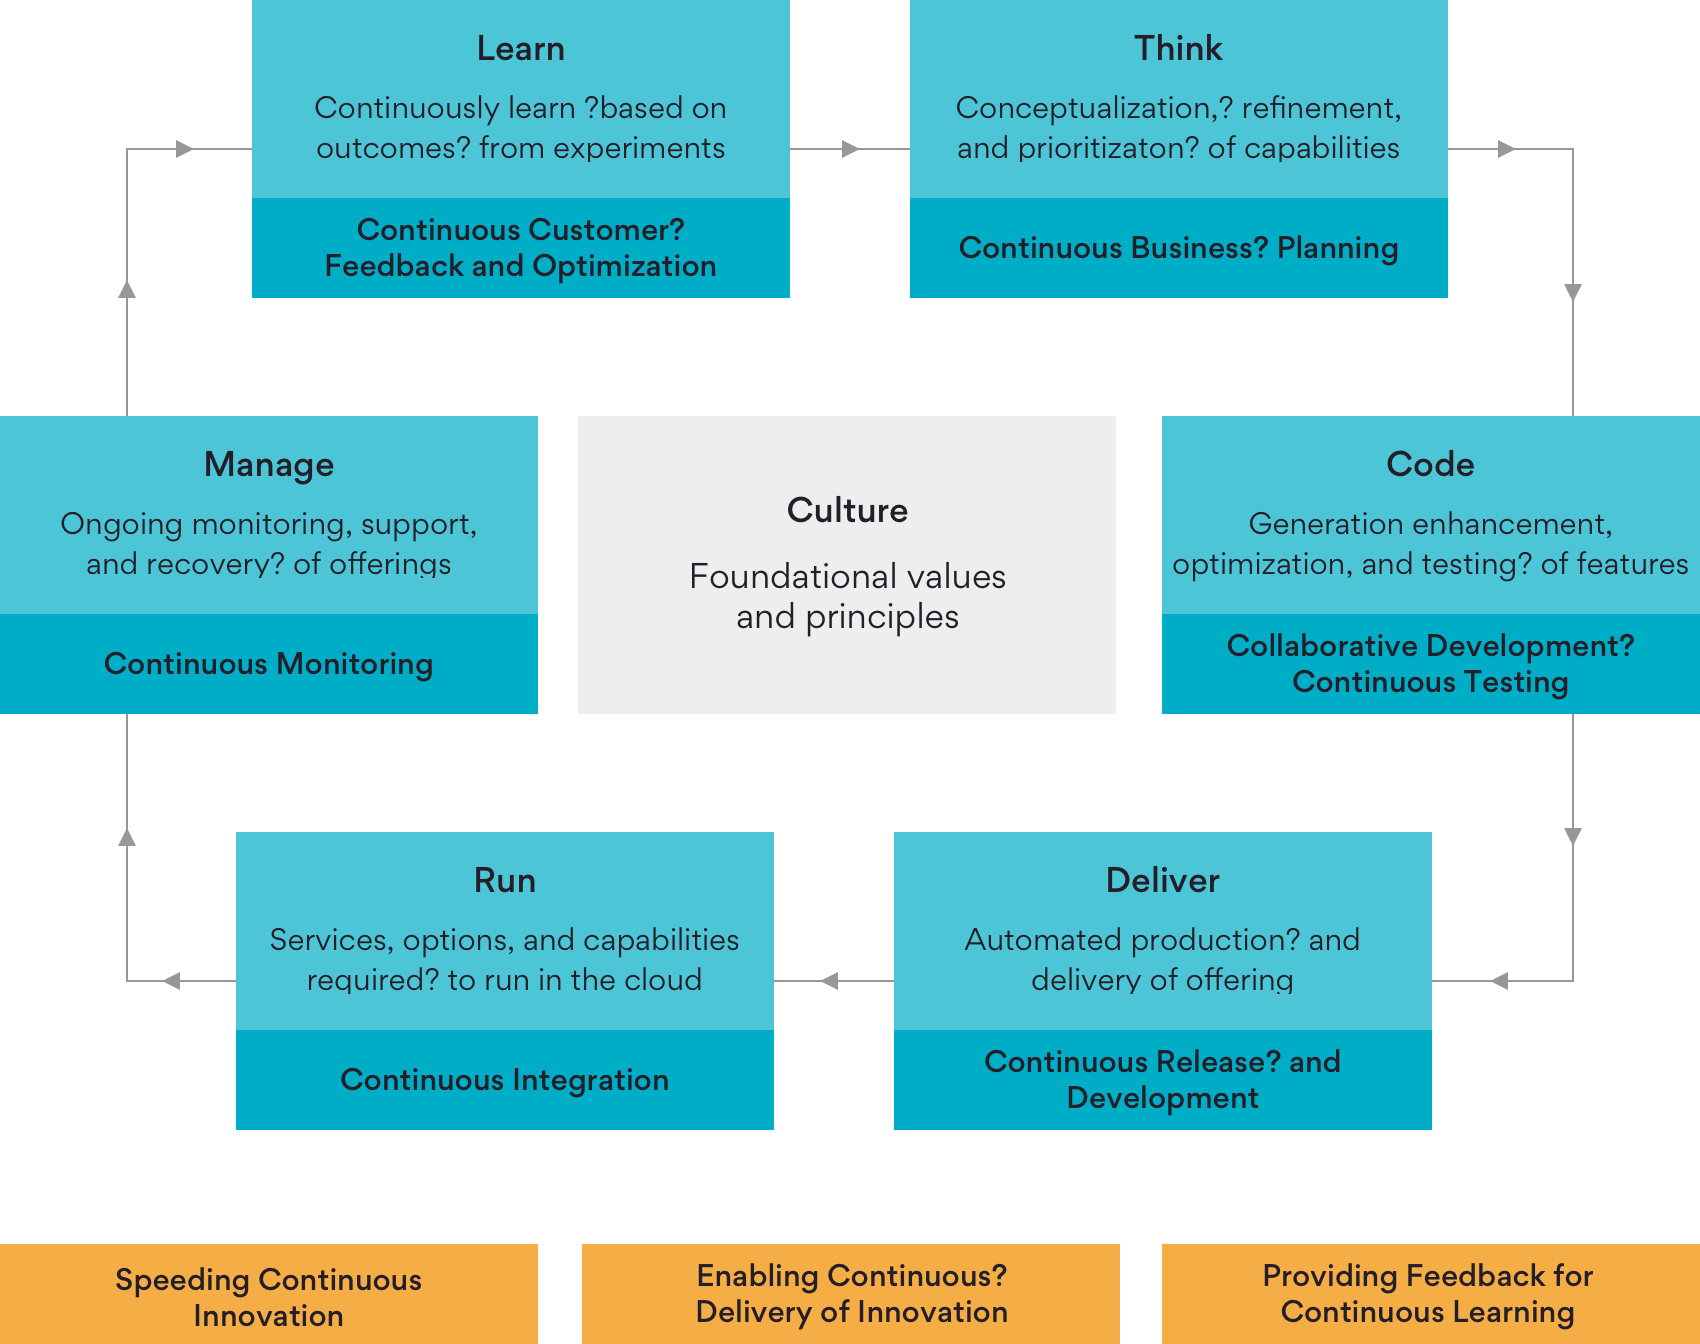 Infographic on Persistent's DevOps Approach and Process